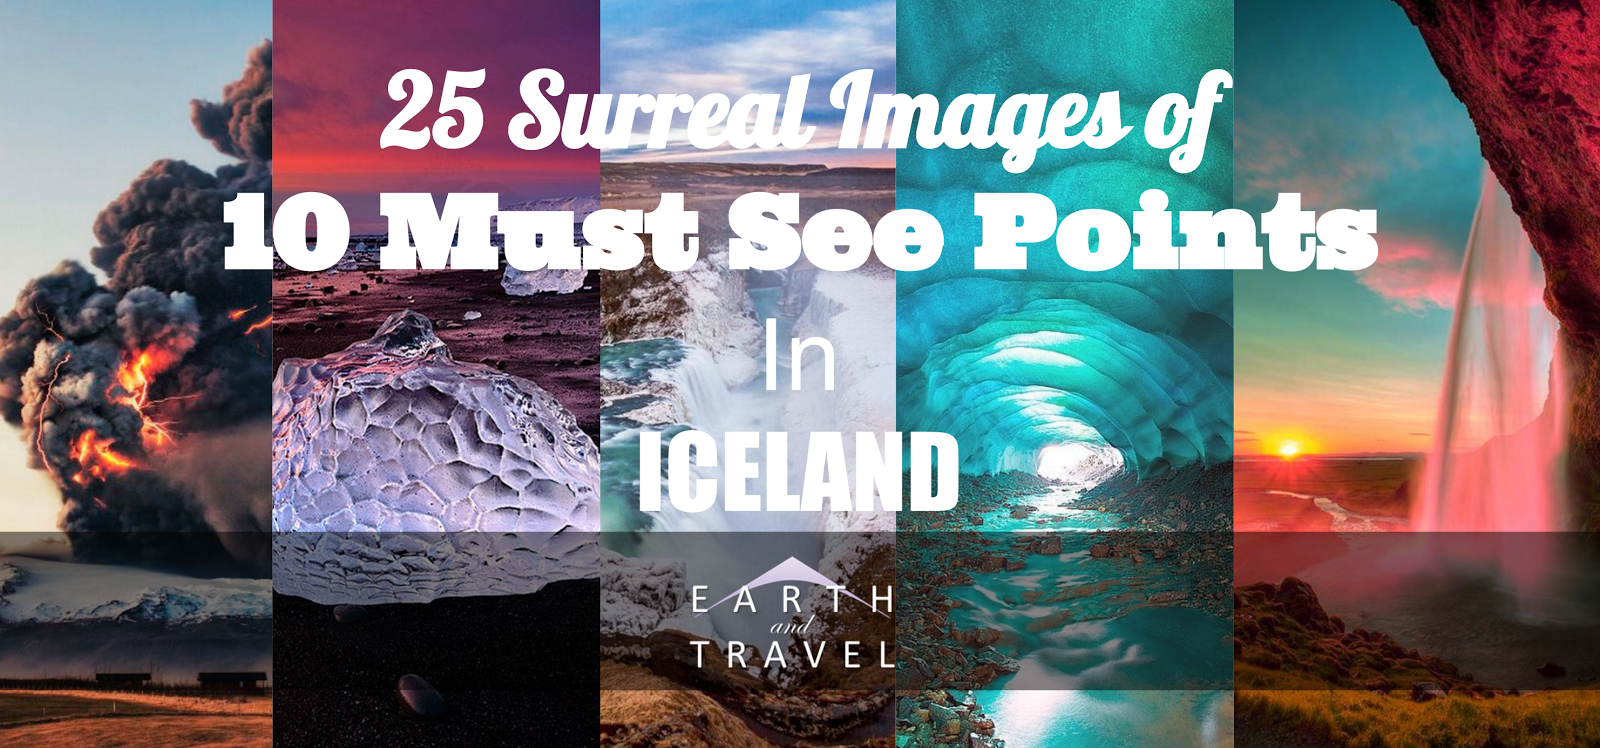 25 Surreal Pictures of 10 Must See Places in Iceland